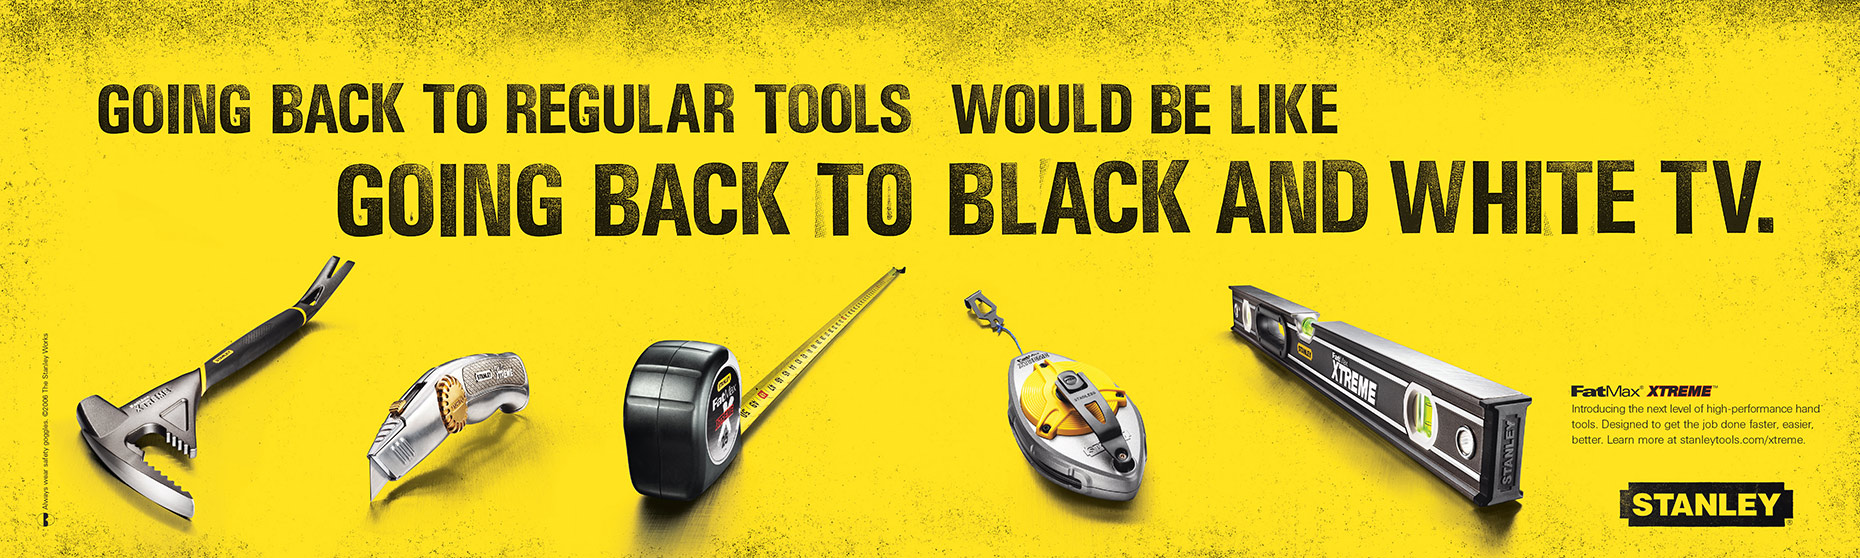 Stanley Tools Print Ad